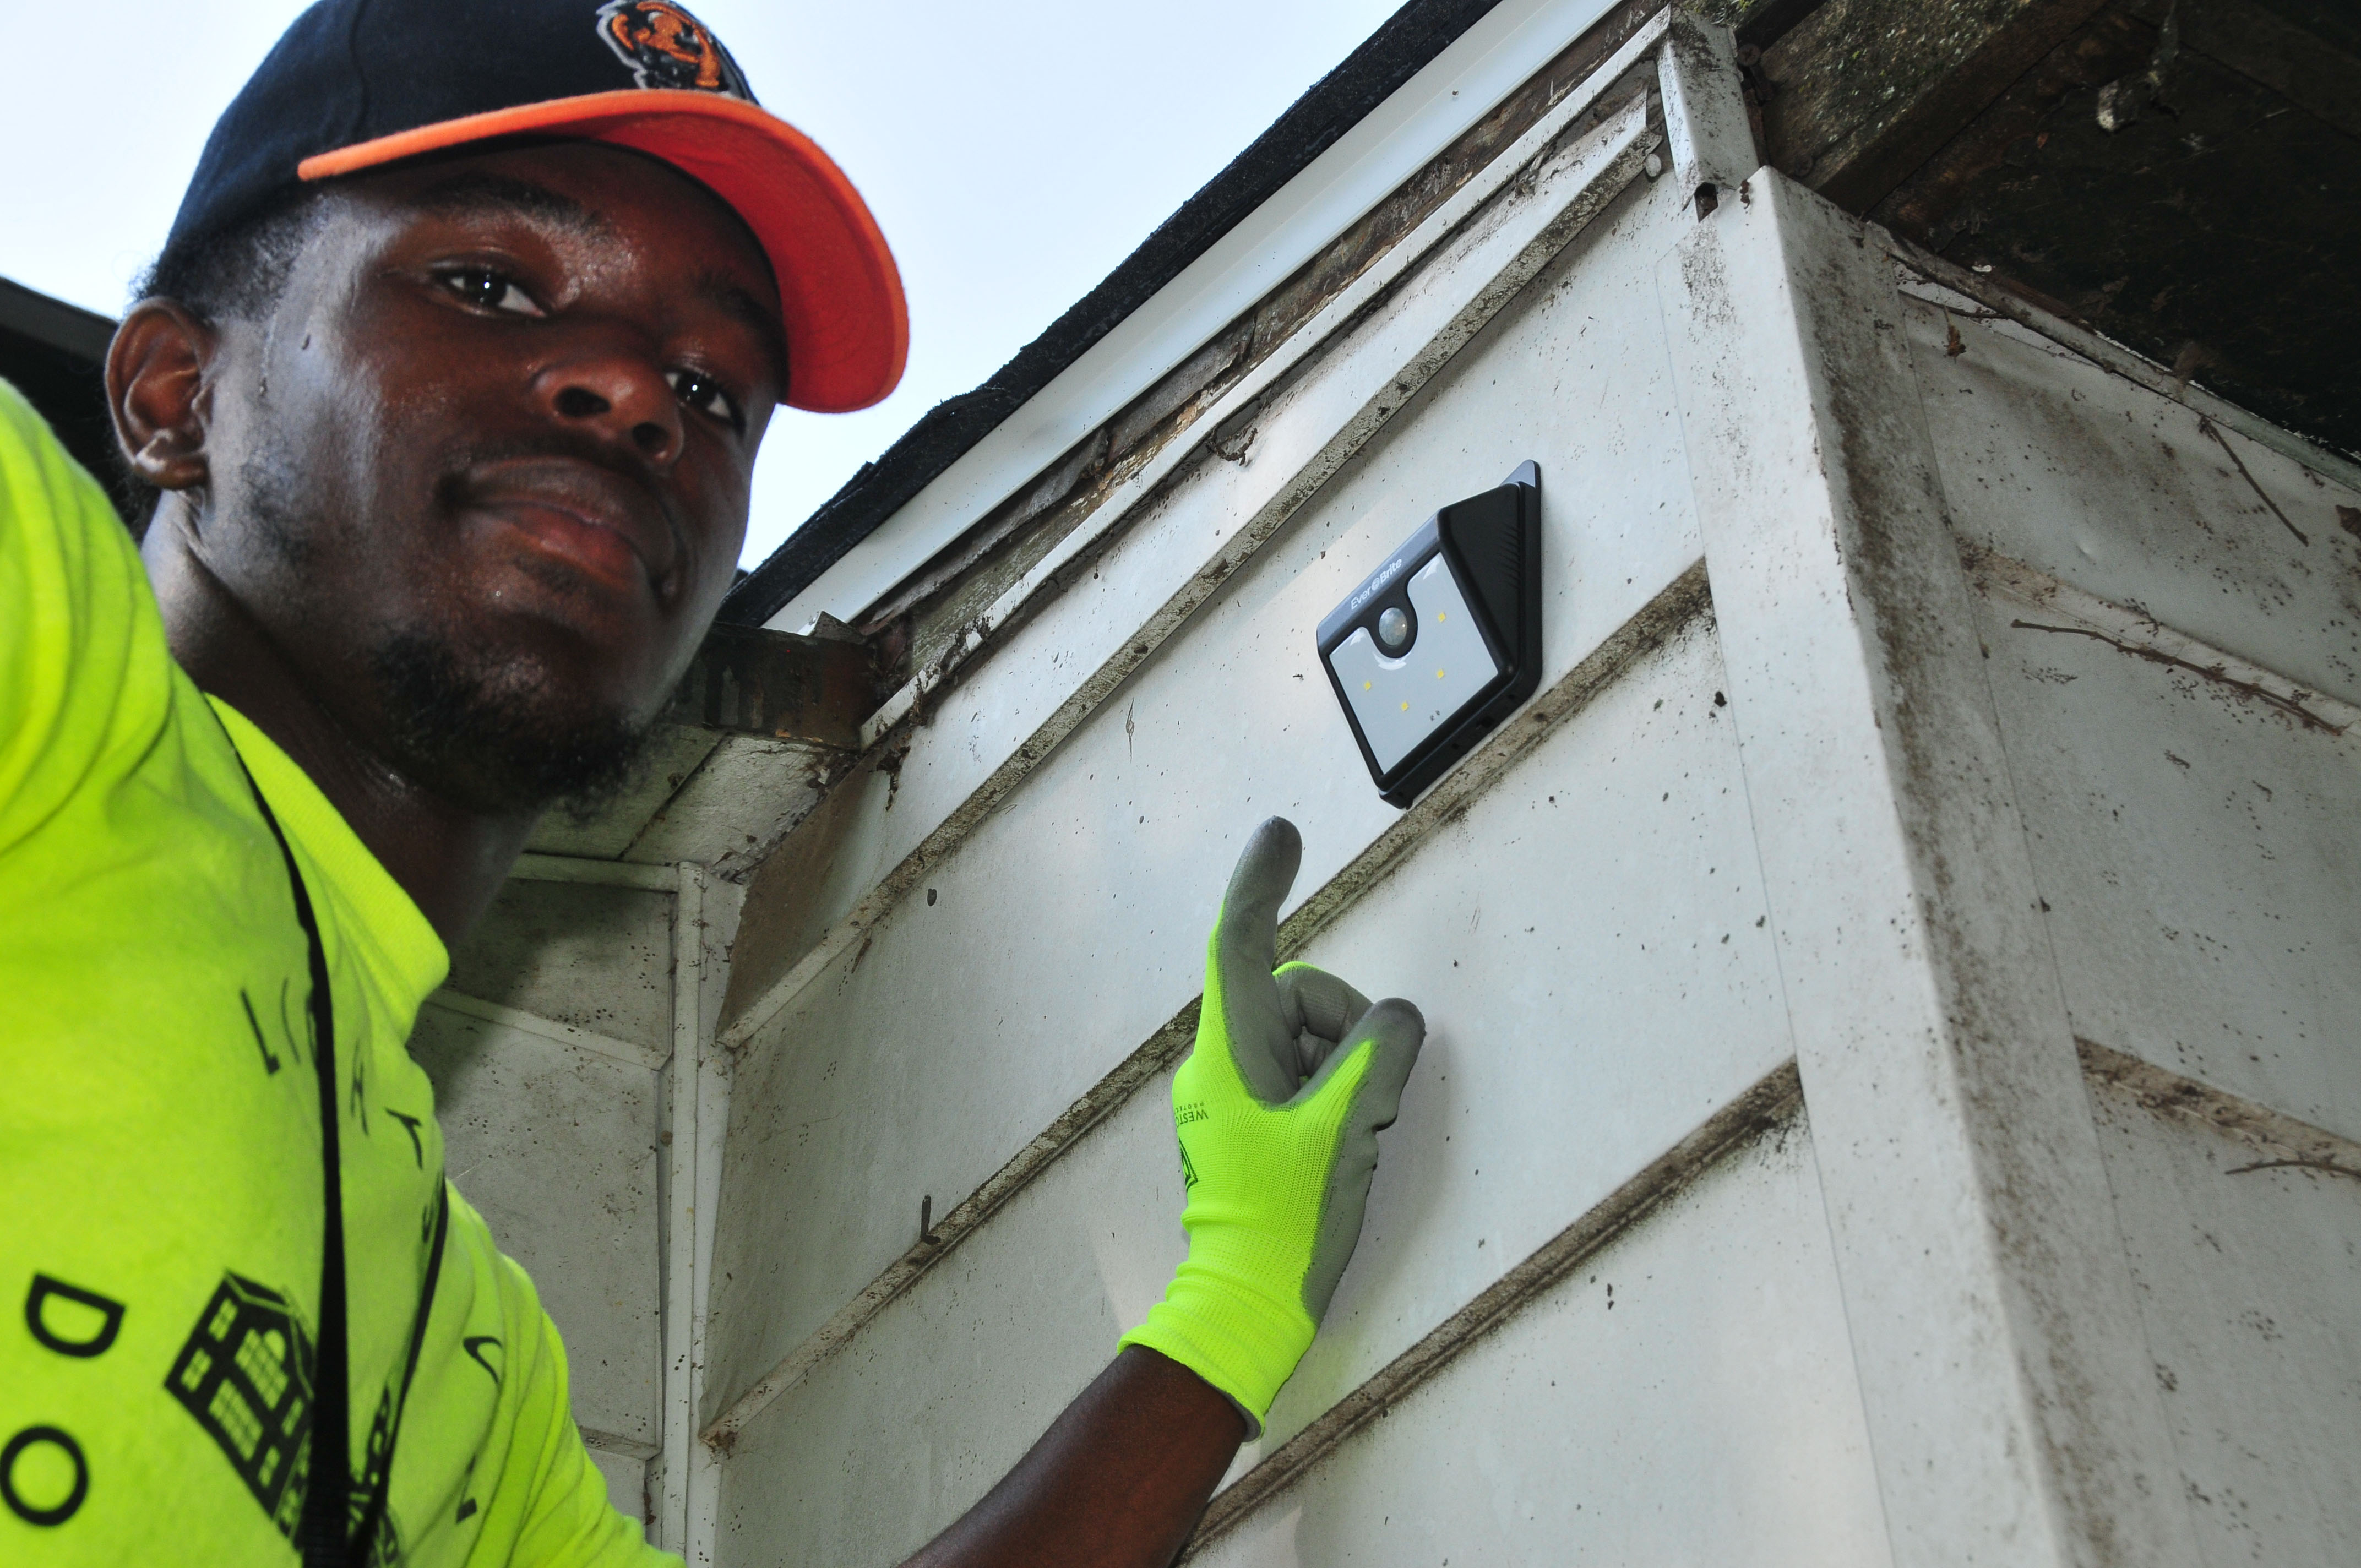 DSU student Eric Wright points to a motion floodlight he just installed at a Dover home.